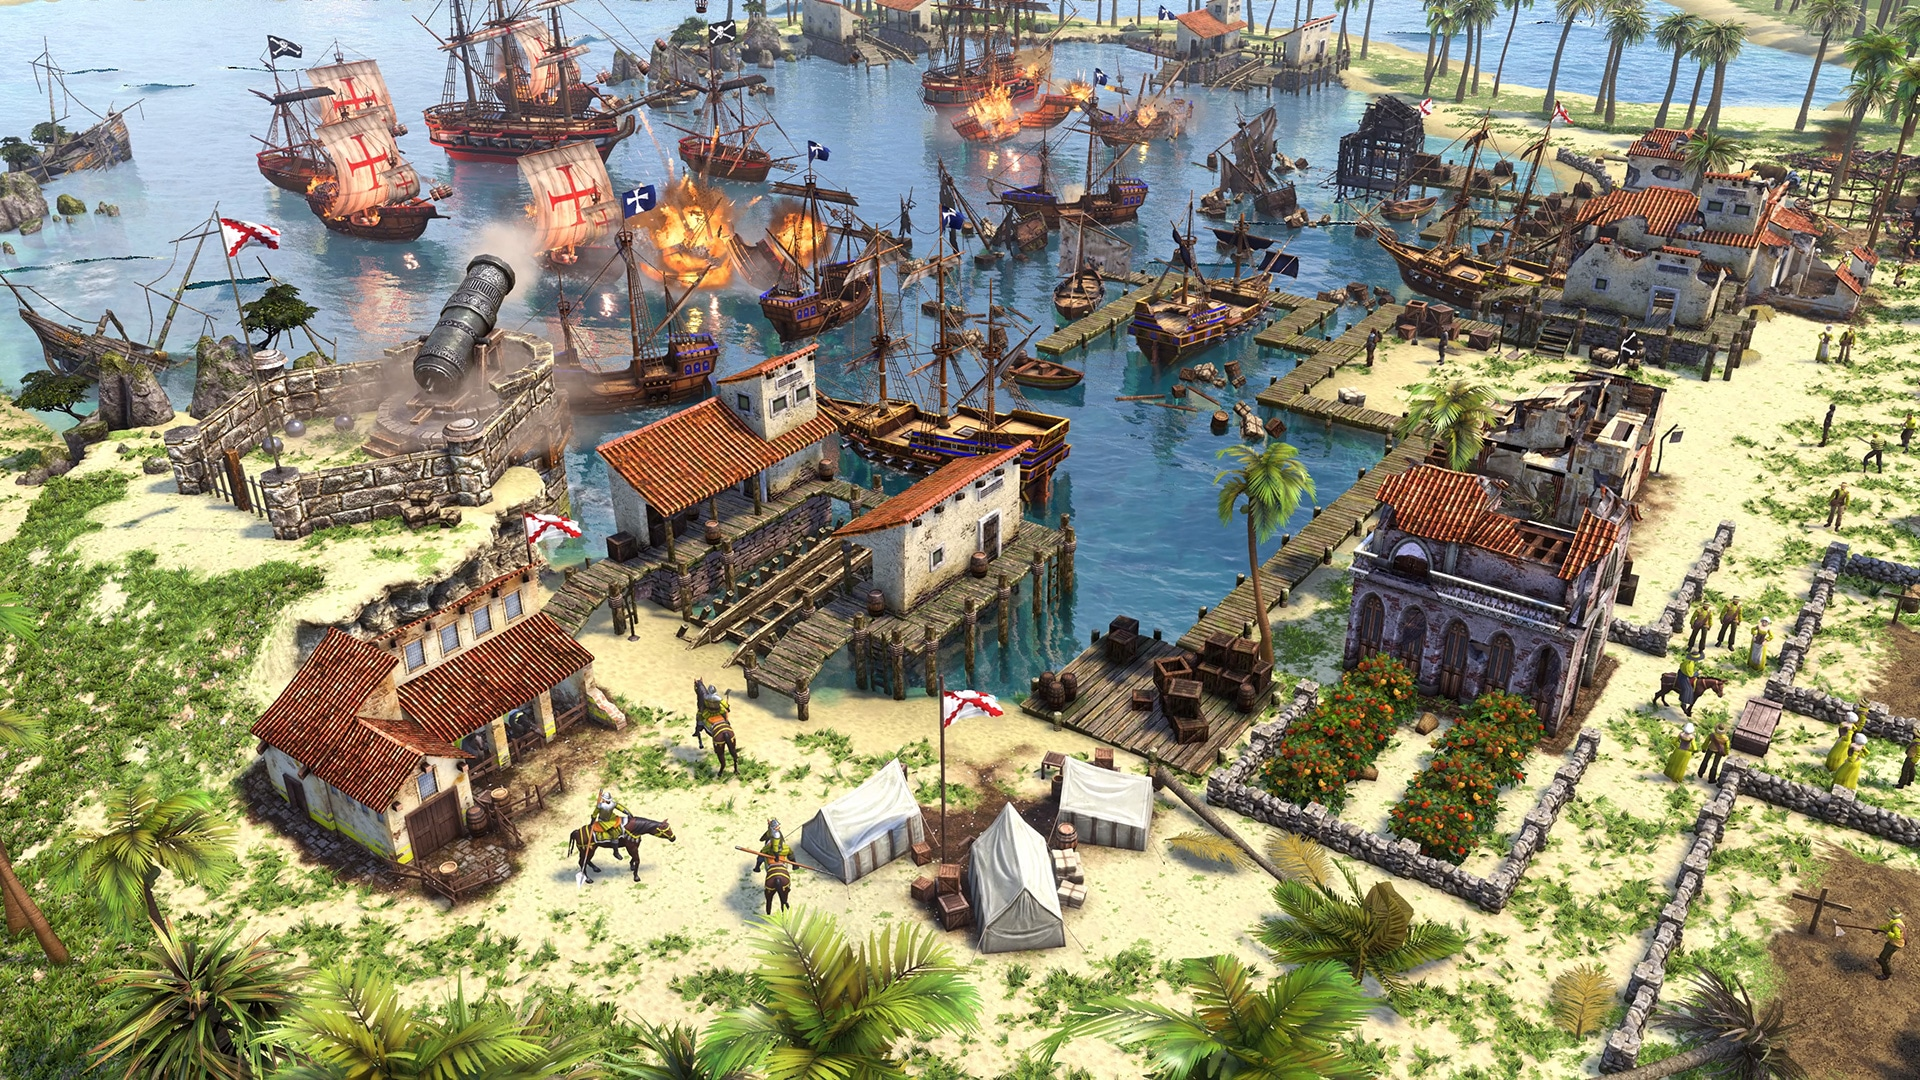 Age of Empires 3 Definitive Editon (c) Microsoft